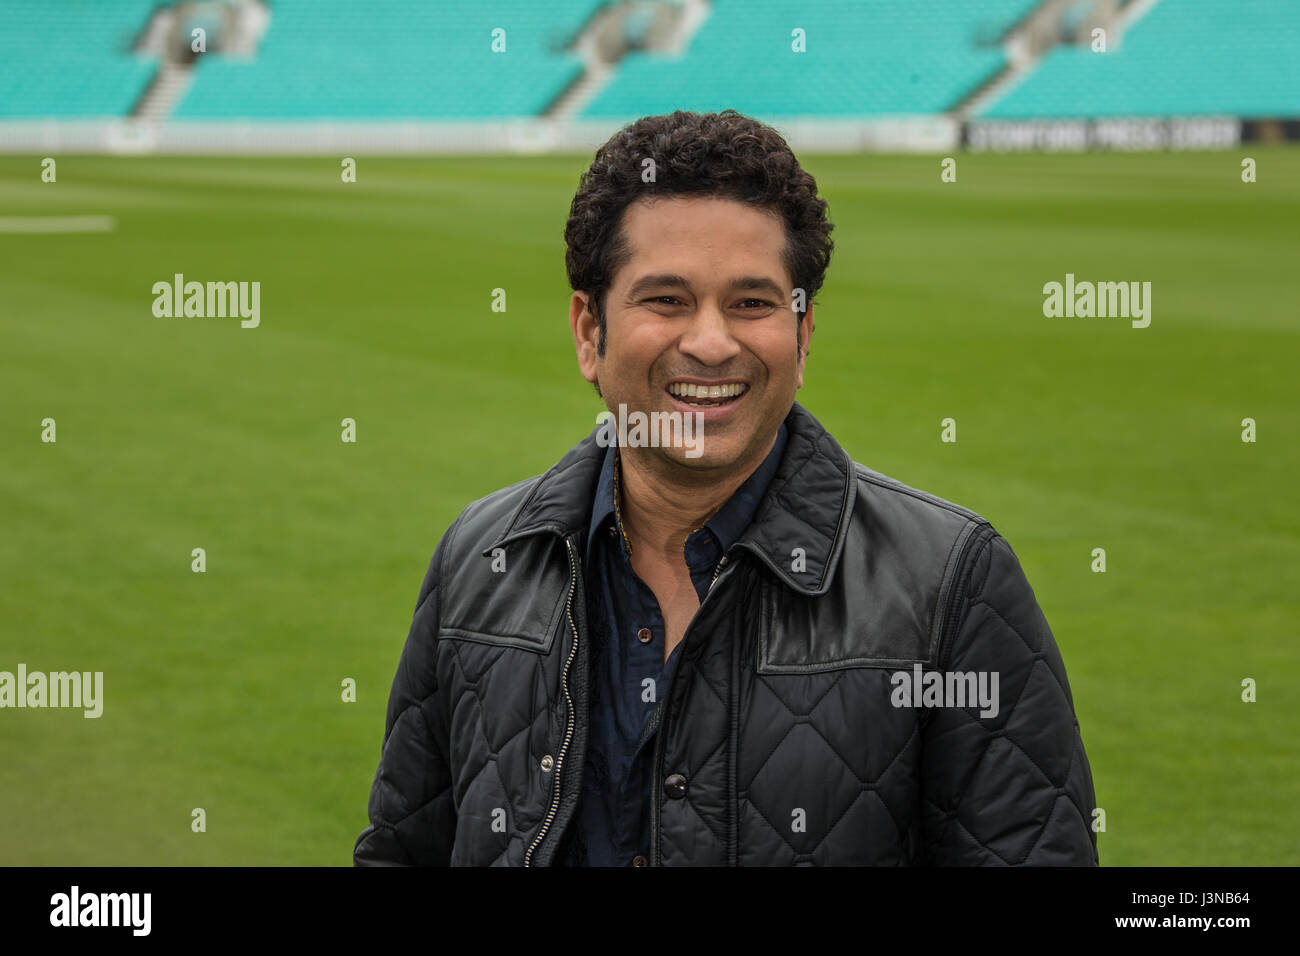 London, UK. 6 Mai 2017. Das Foto-Shooting für die London Film Version von Sachin Tendulkar: A Billion Träume Stockbild